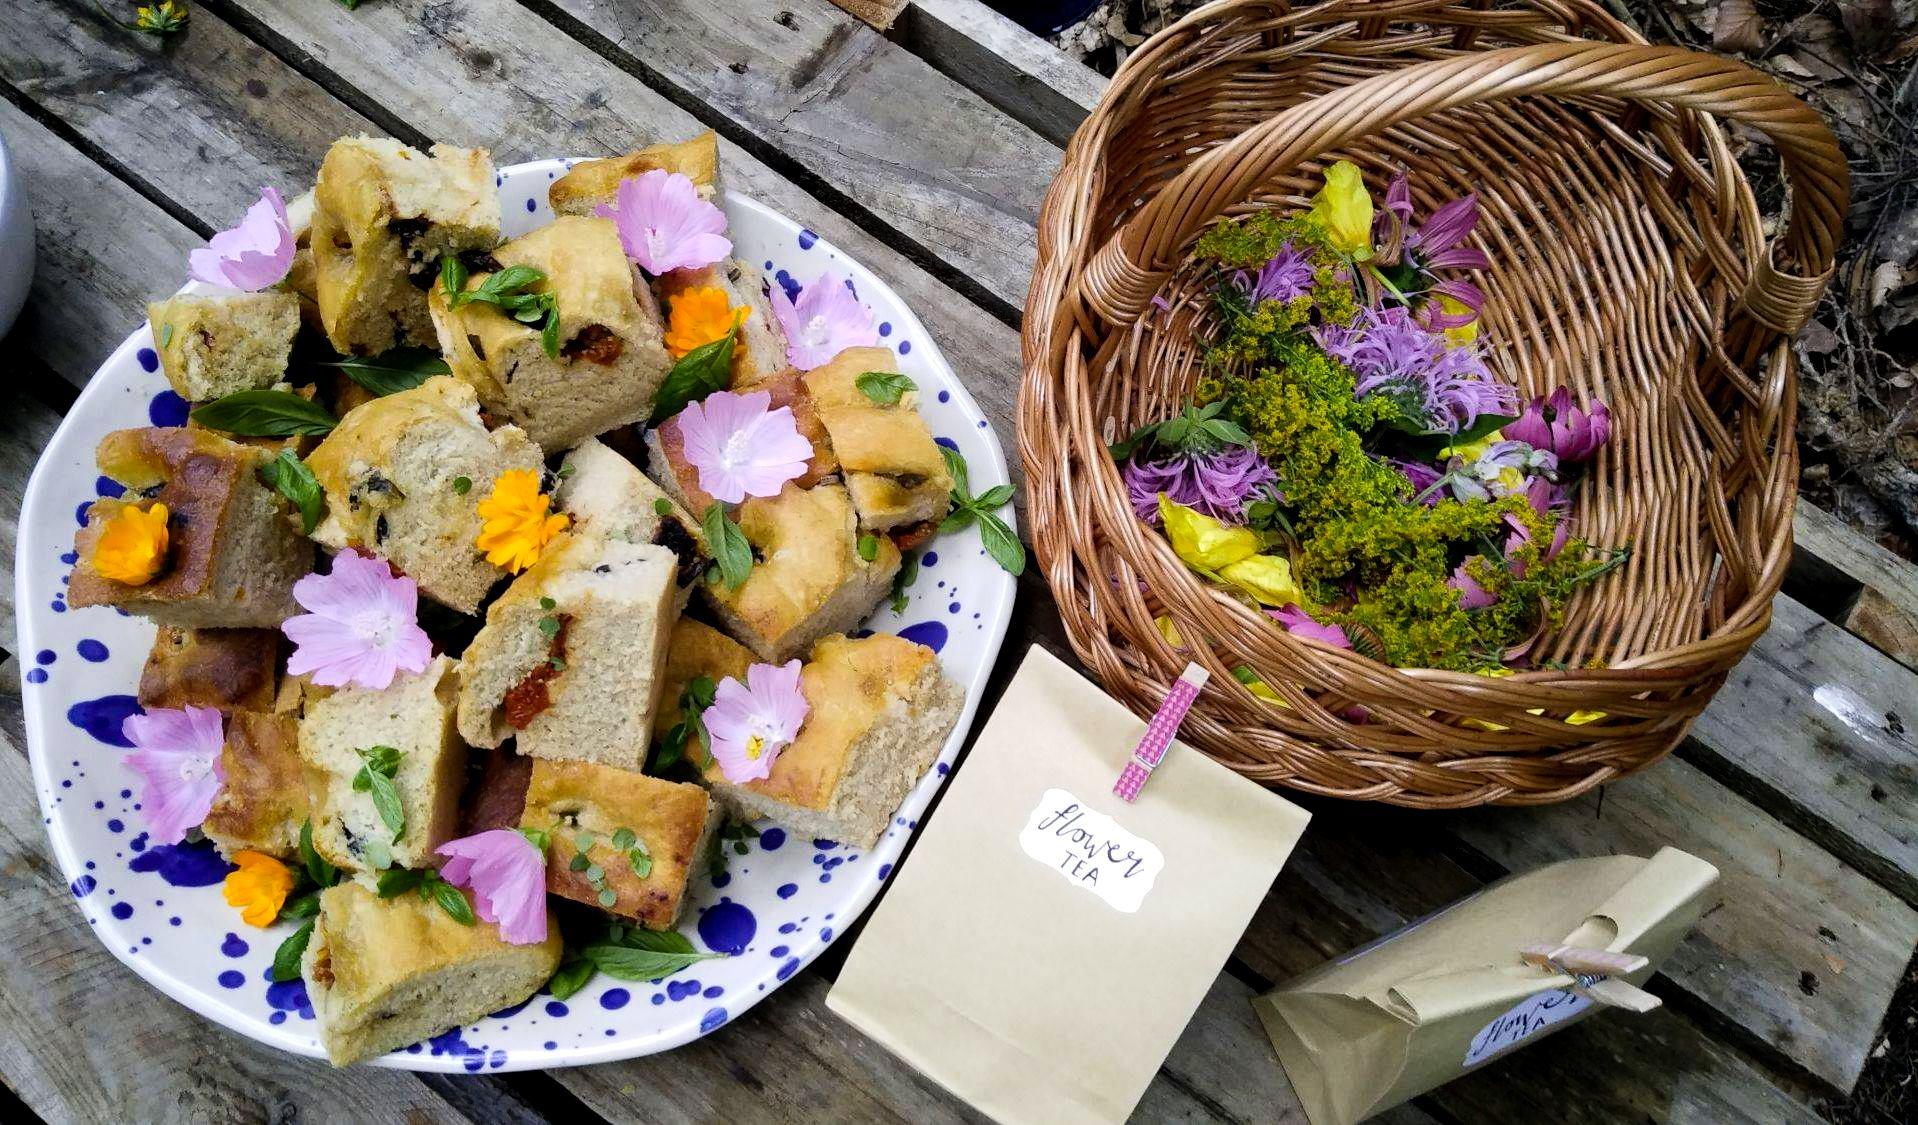 Dish of olive and sun-dried tomato focaccia, a basket of edible flowers, and two bags of flower tea